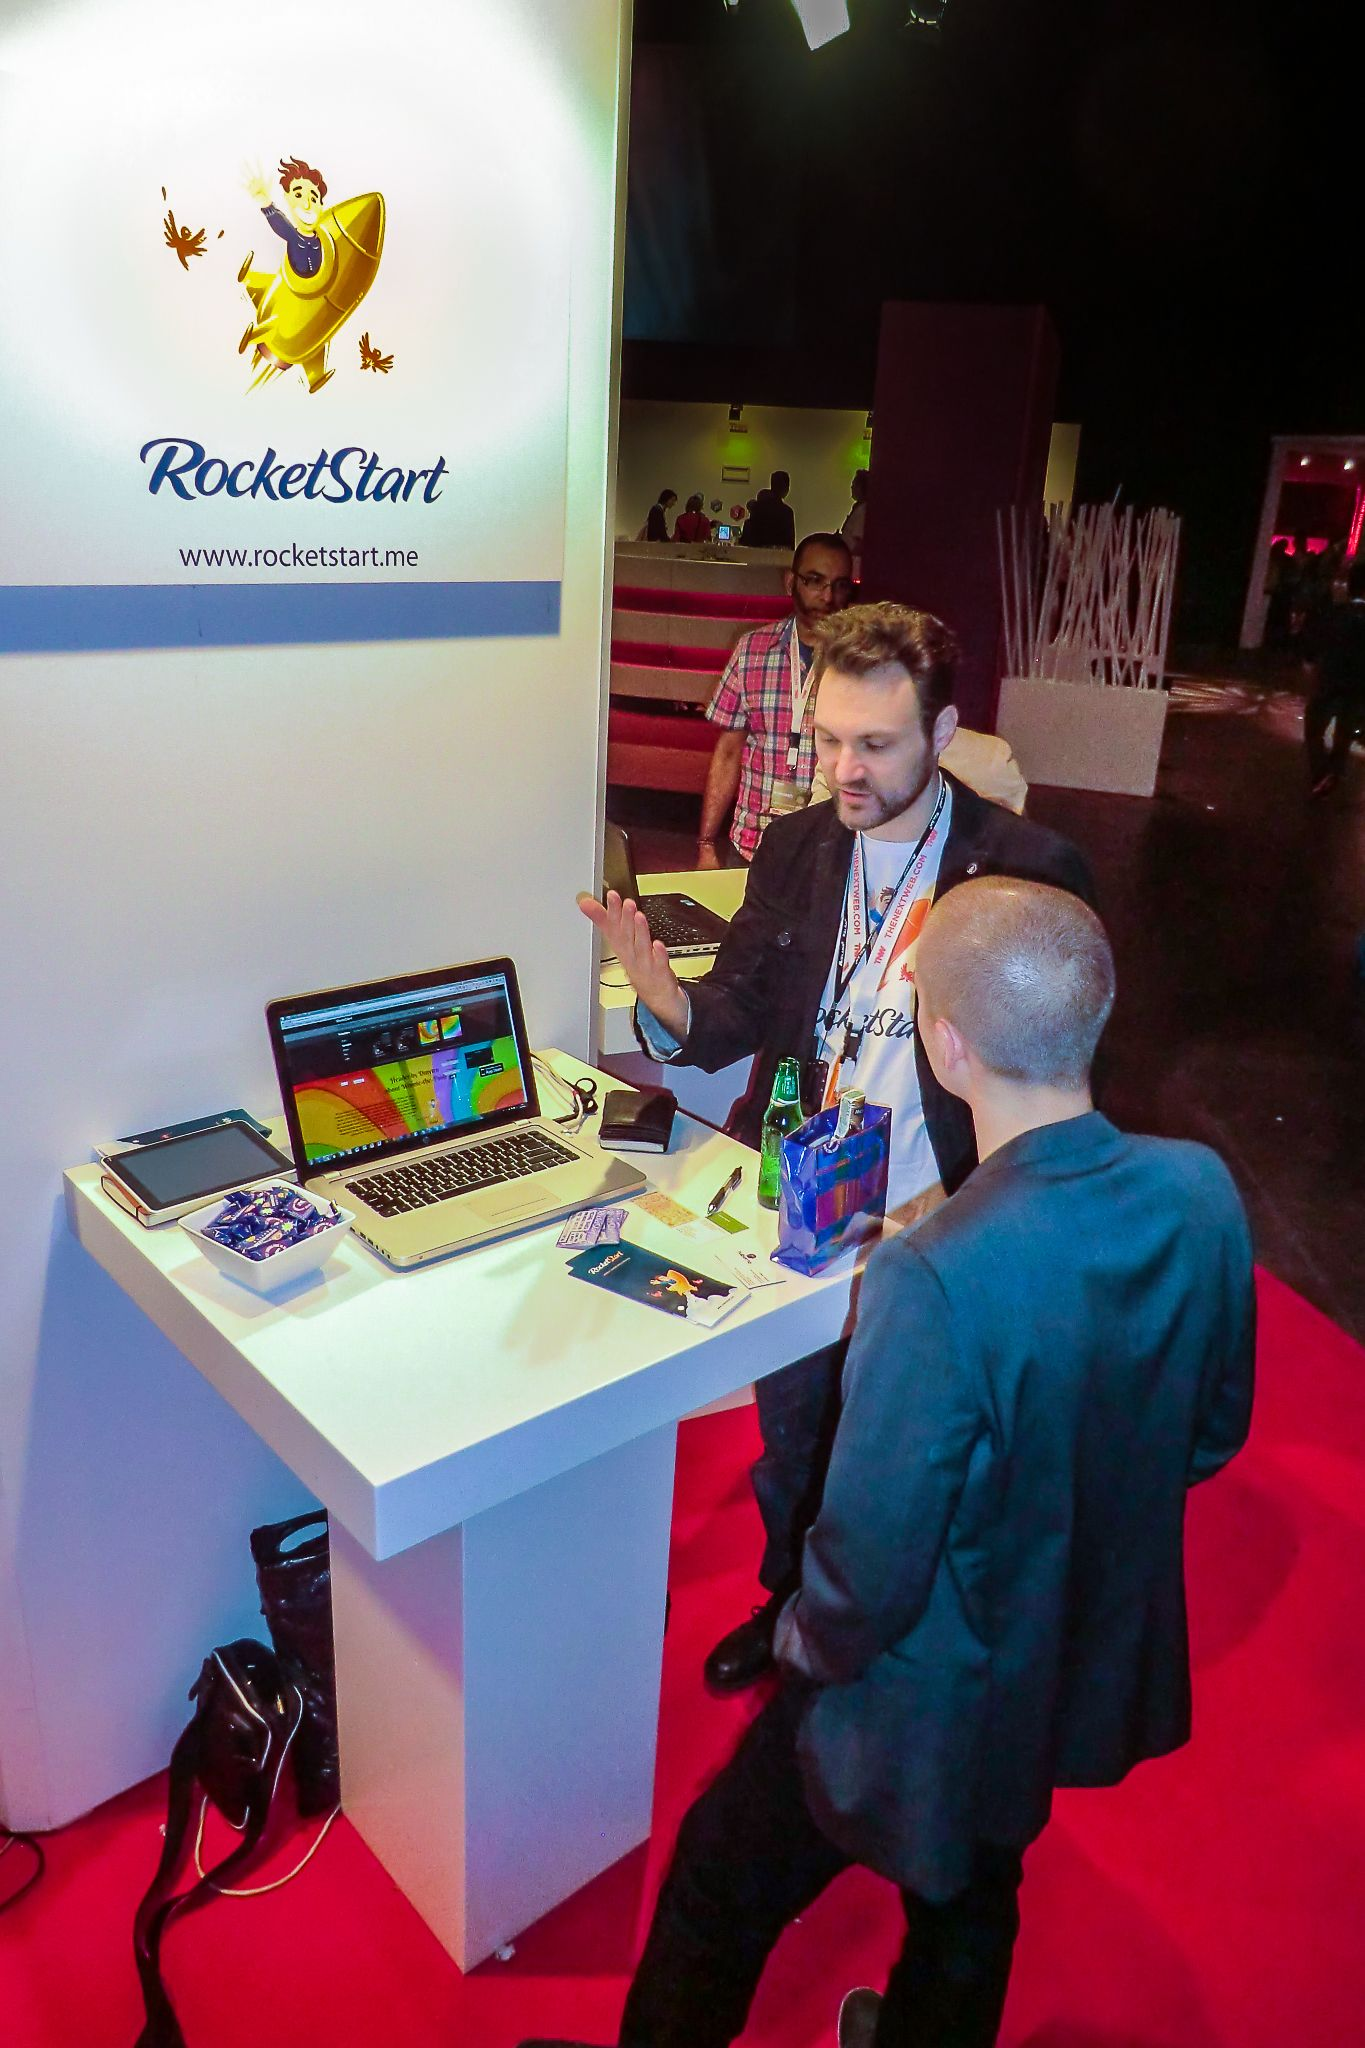 RocketStart presented its prototype during The Next Web 2012 in Amsterdam (2012.04.25)